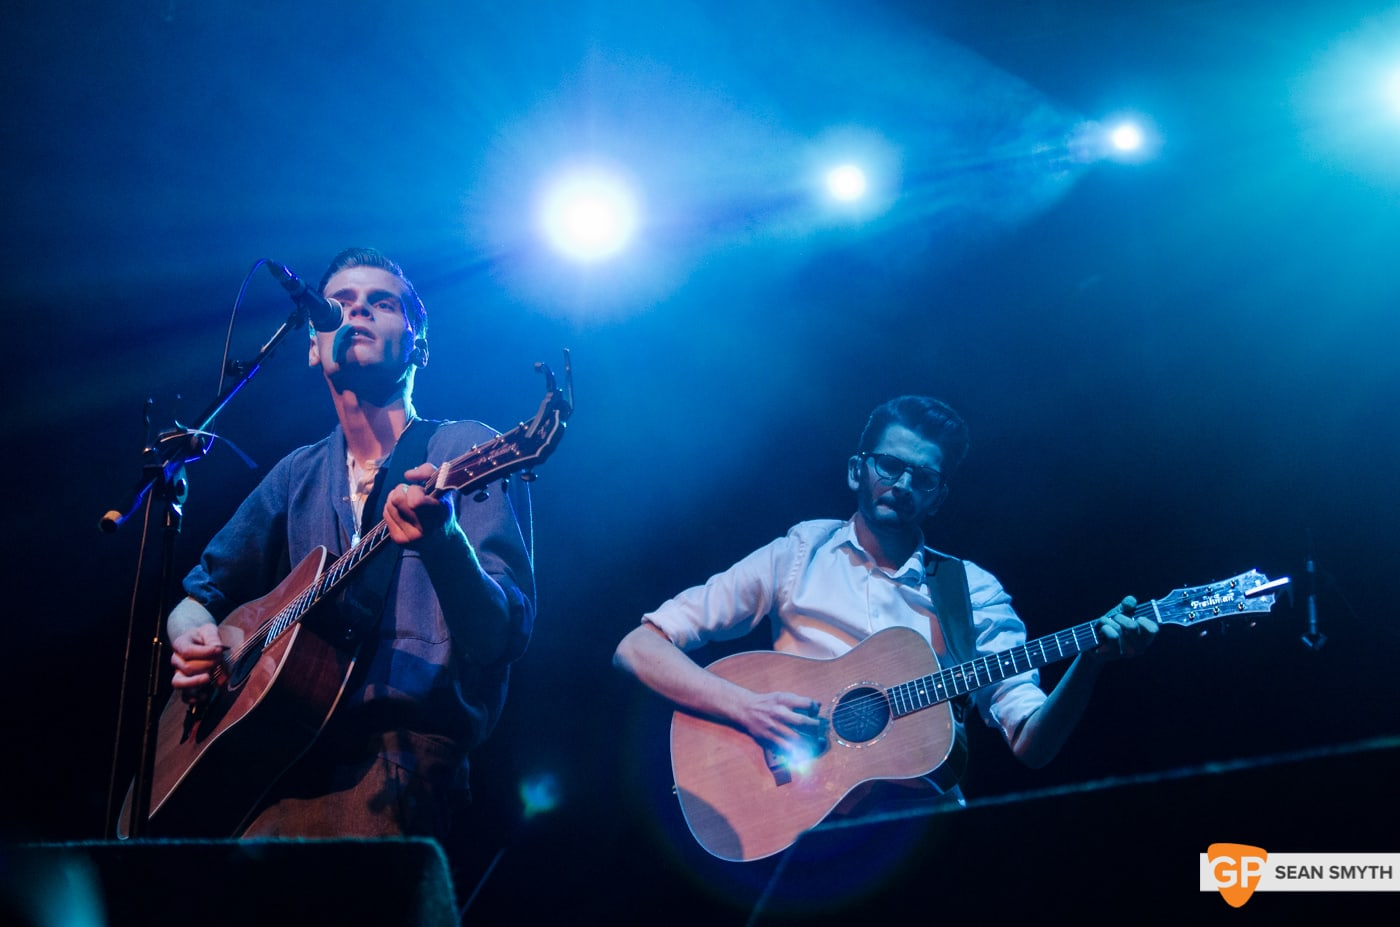 hudson-taylor-at-the-olympia-theatre-26-2-15-by-sean-smyth-11-of-26_16549497837_o